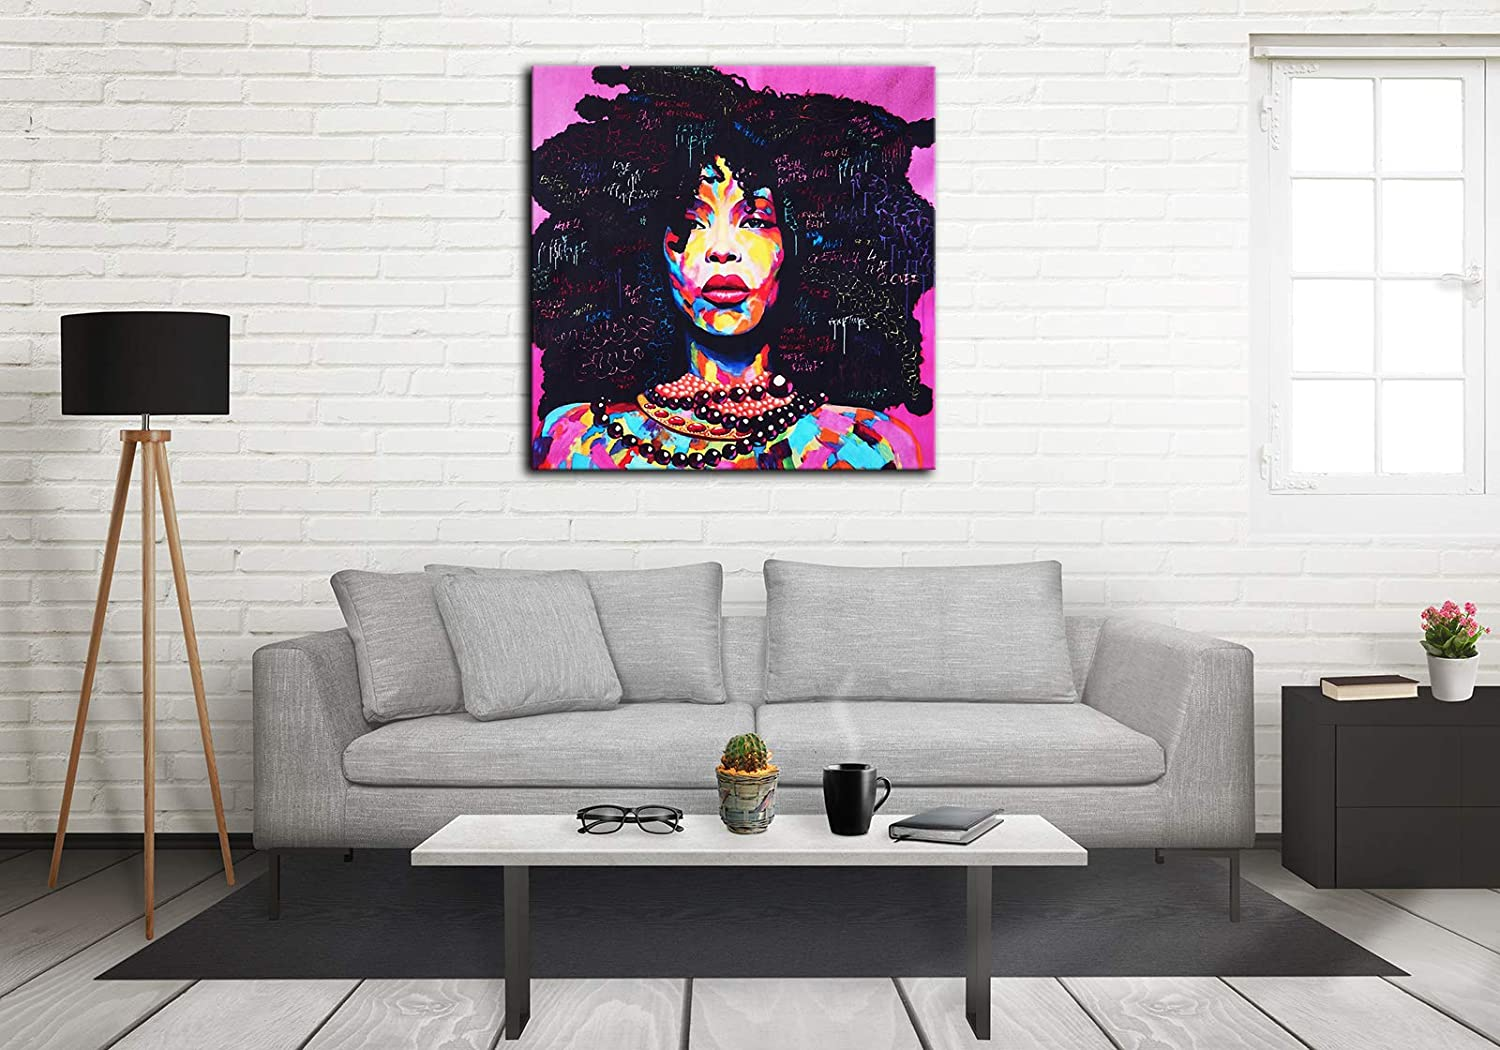 African American Black Art Canvas Bedroom Home Decor Wall Art Canvas Painting Graffiti Abstract Style Poster Print Painting Decoration Living Room Framed Ready to Hang 24Wx24H, Artwork-01